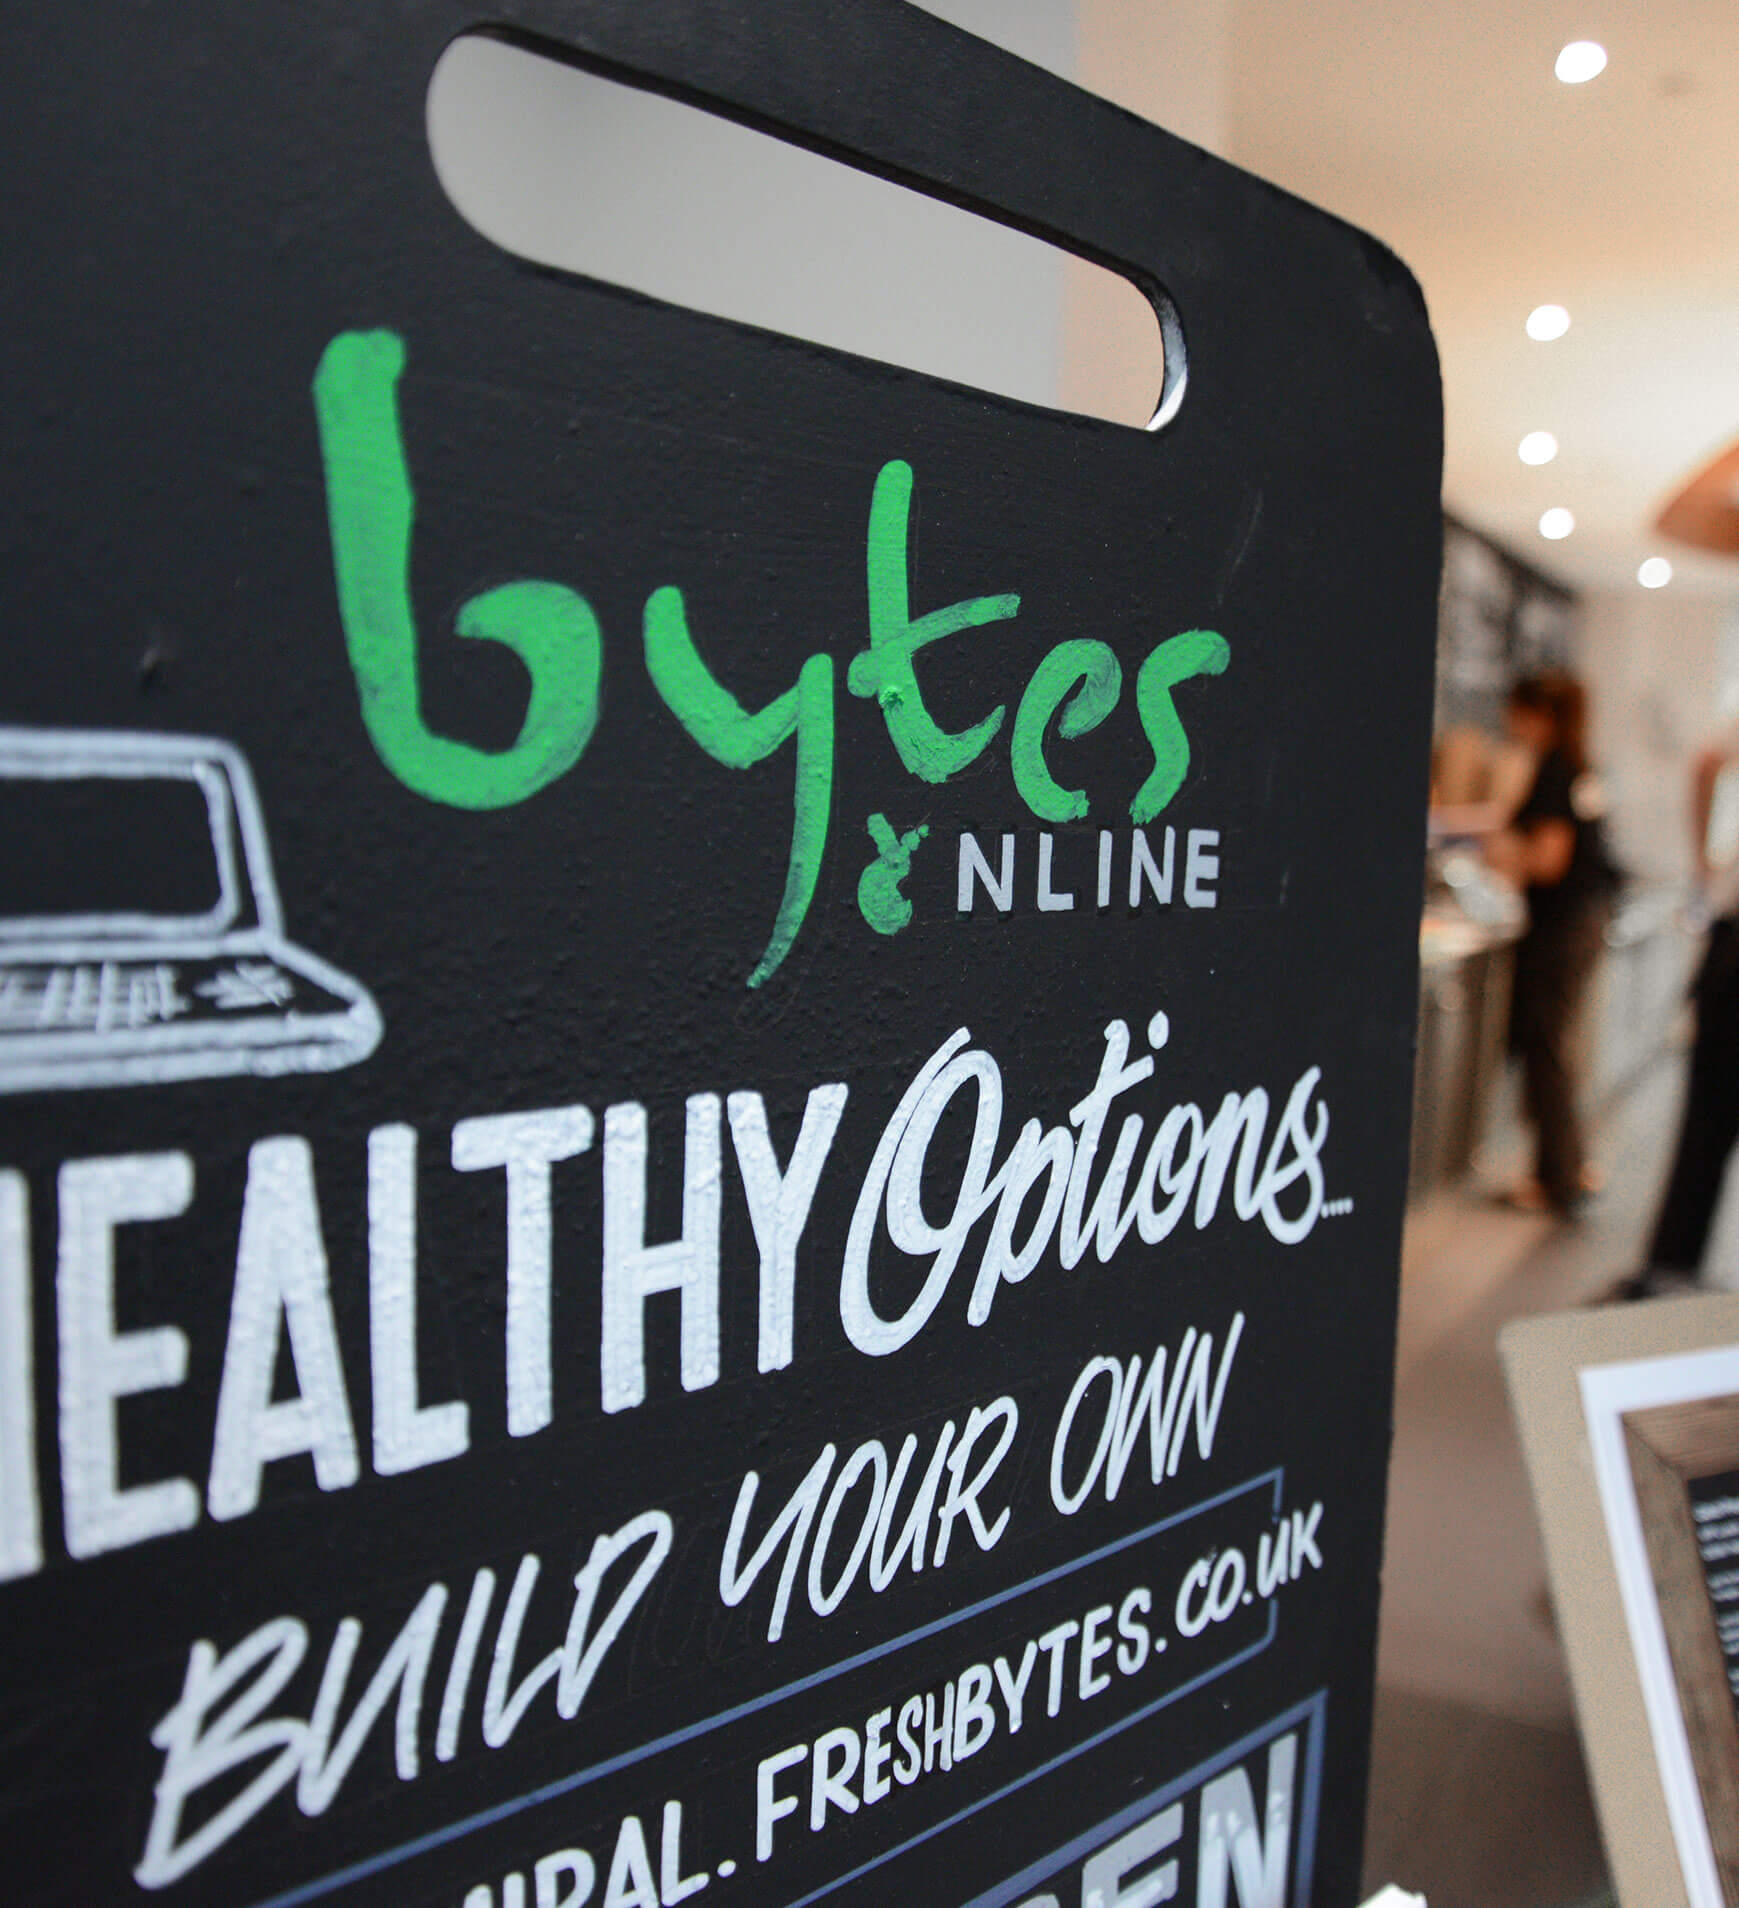 Easy Online Ordering with Bytes